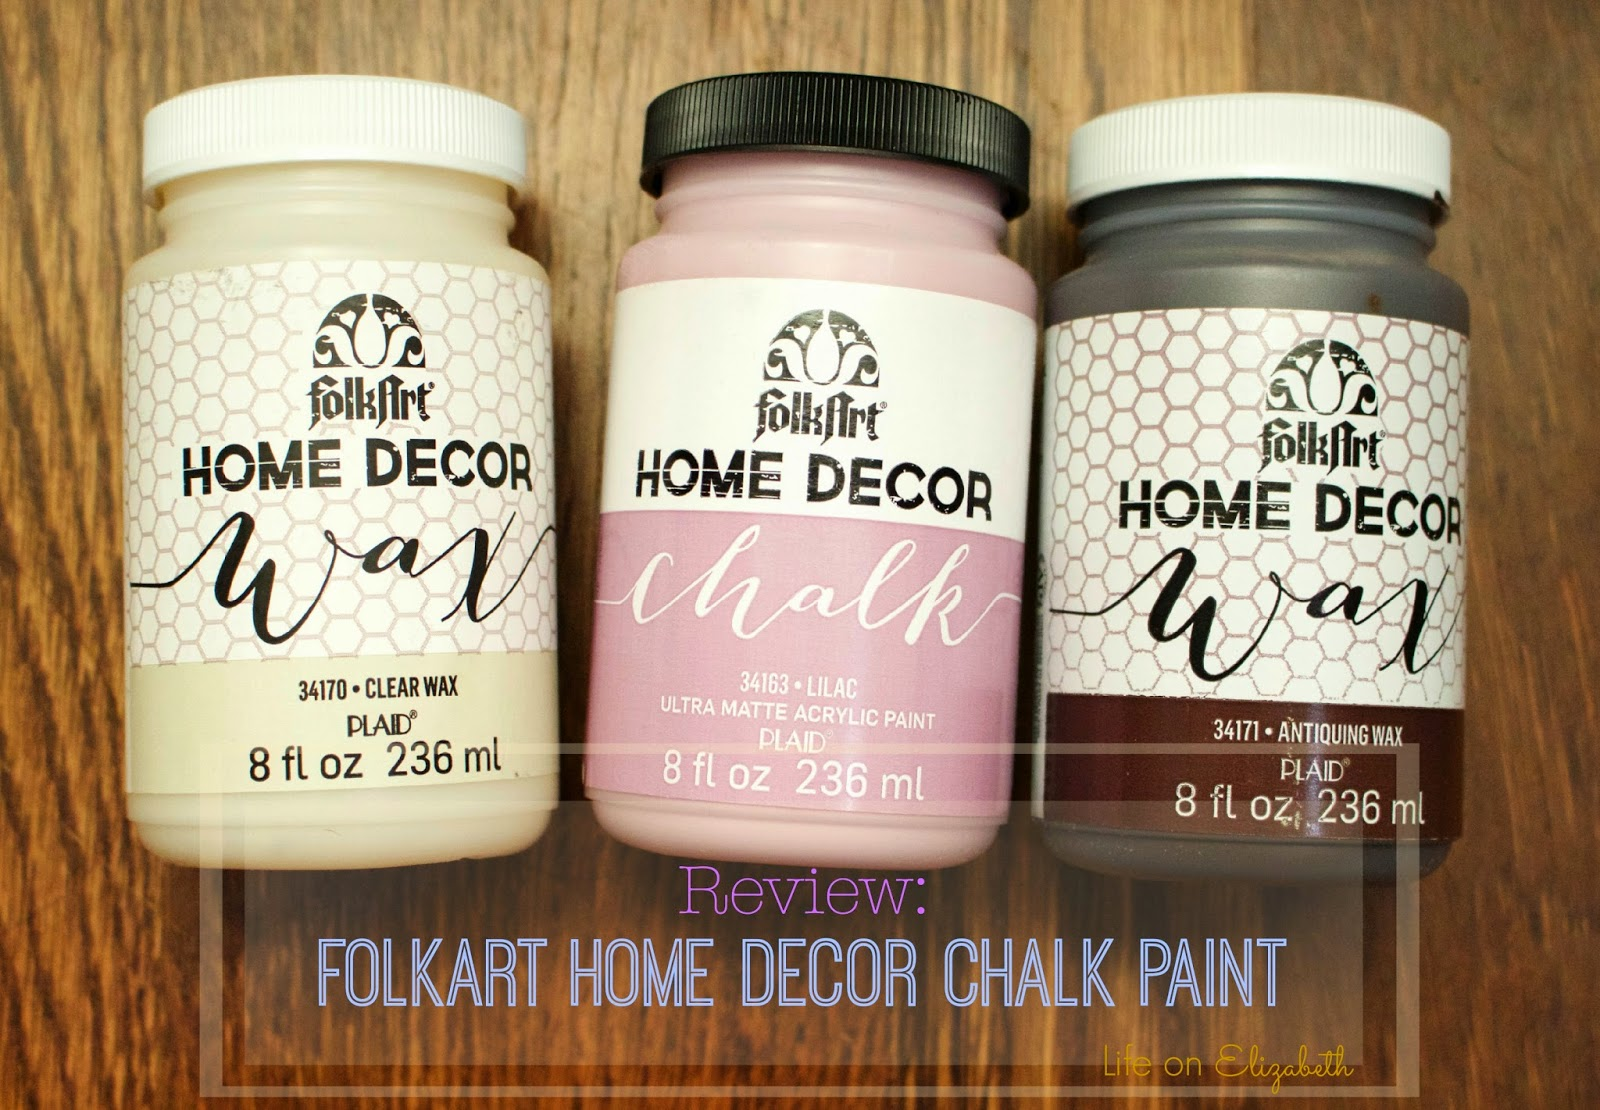 U0027FolkArt Home Decor Chalku0027 Paint Review